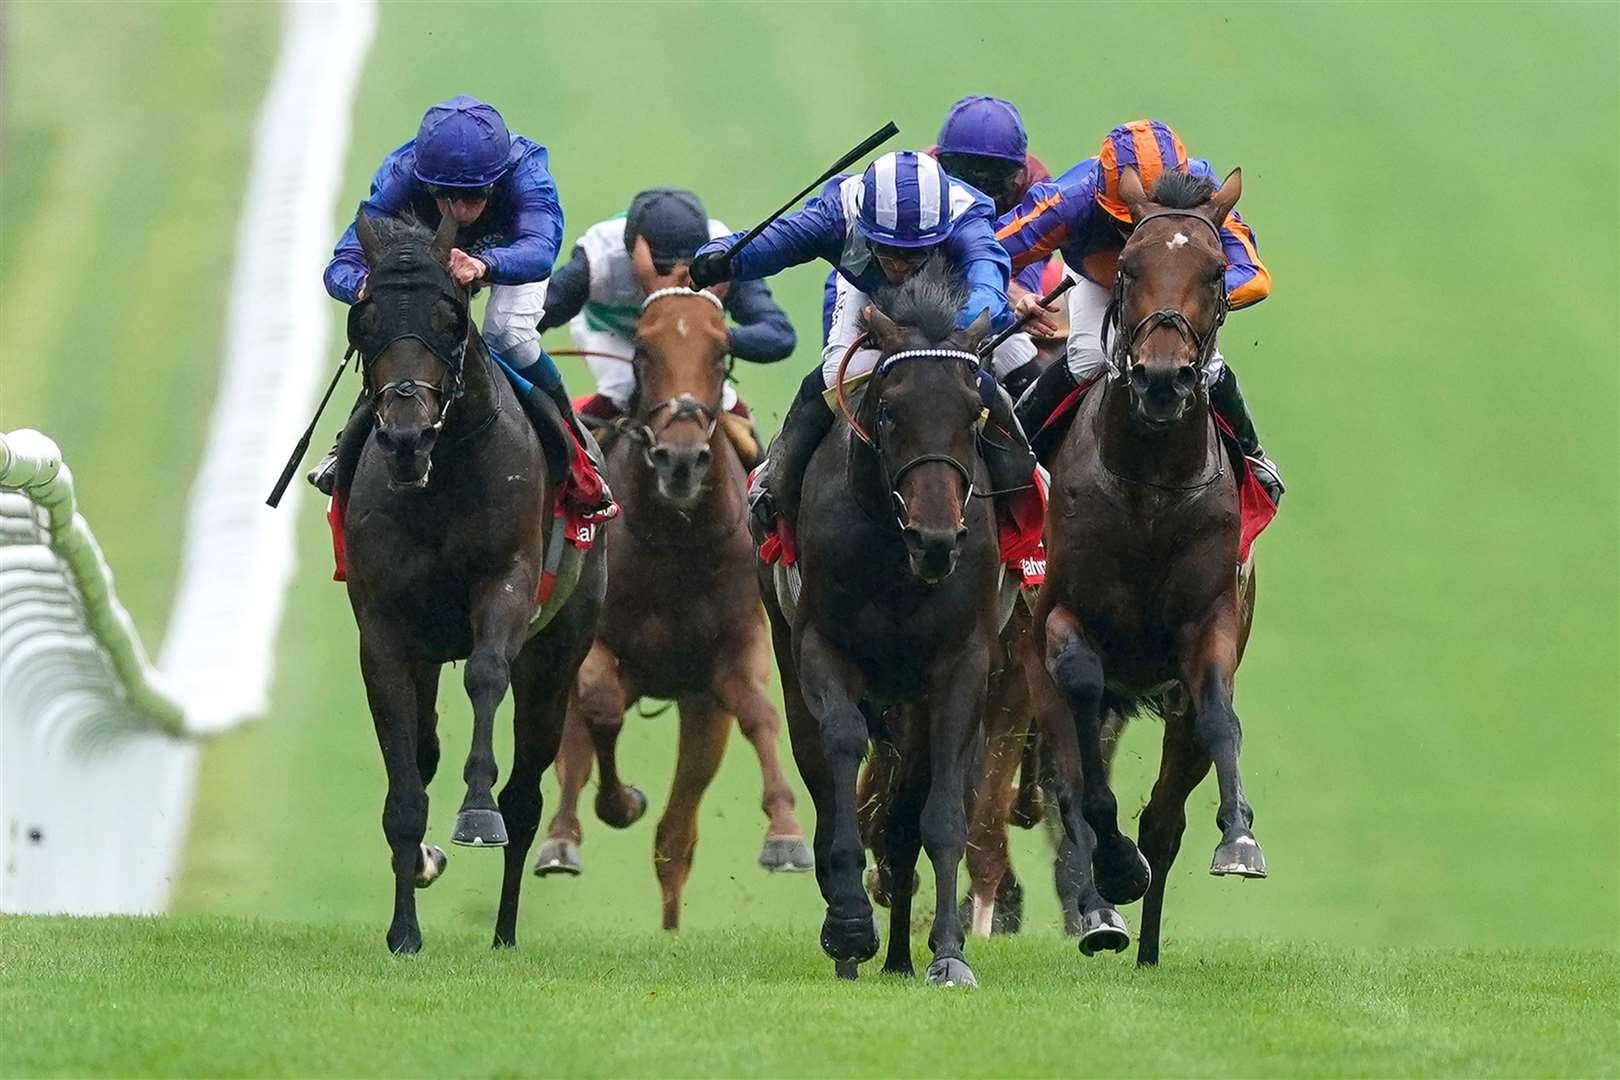 Jim Crowley riding the William Haggas-trained Al Aasy (blue/white cap) win The Bahrain Trophy Stakes at Newmarket Racecourse on July 09Picture: Alan Crowhurst/Getty Images